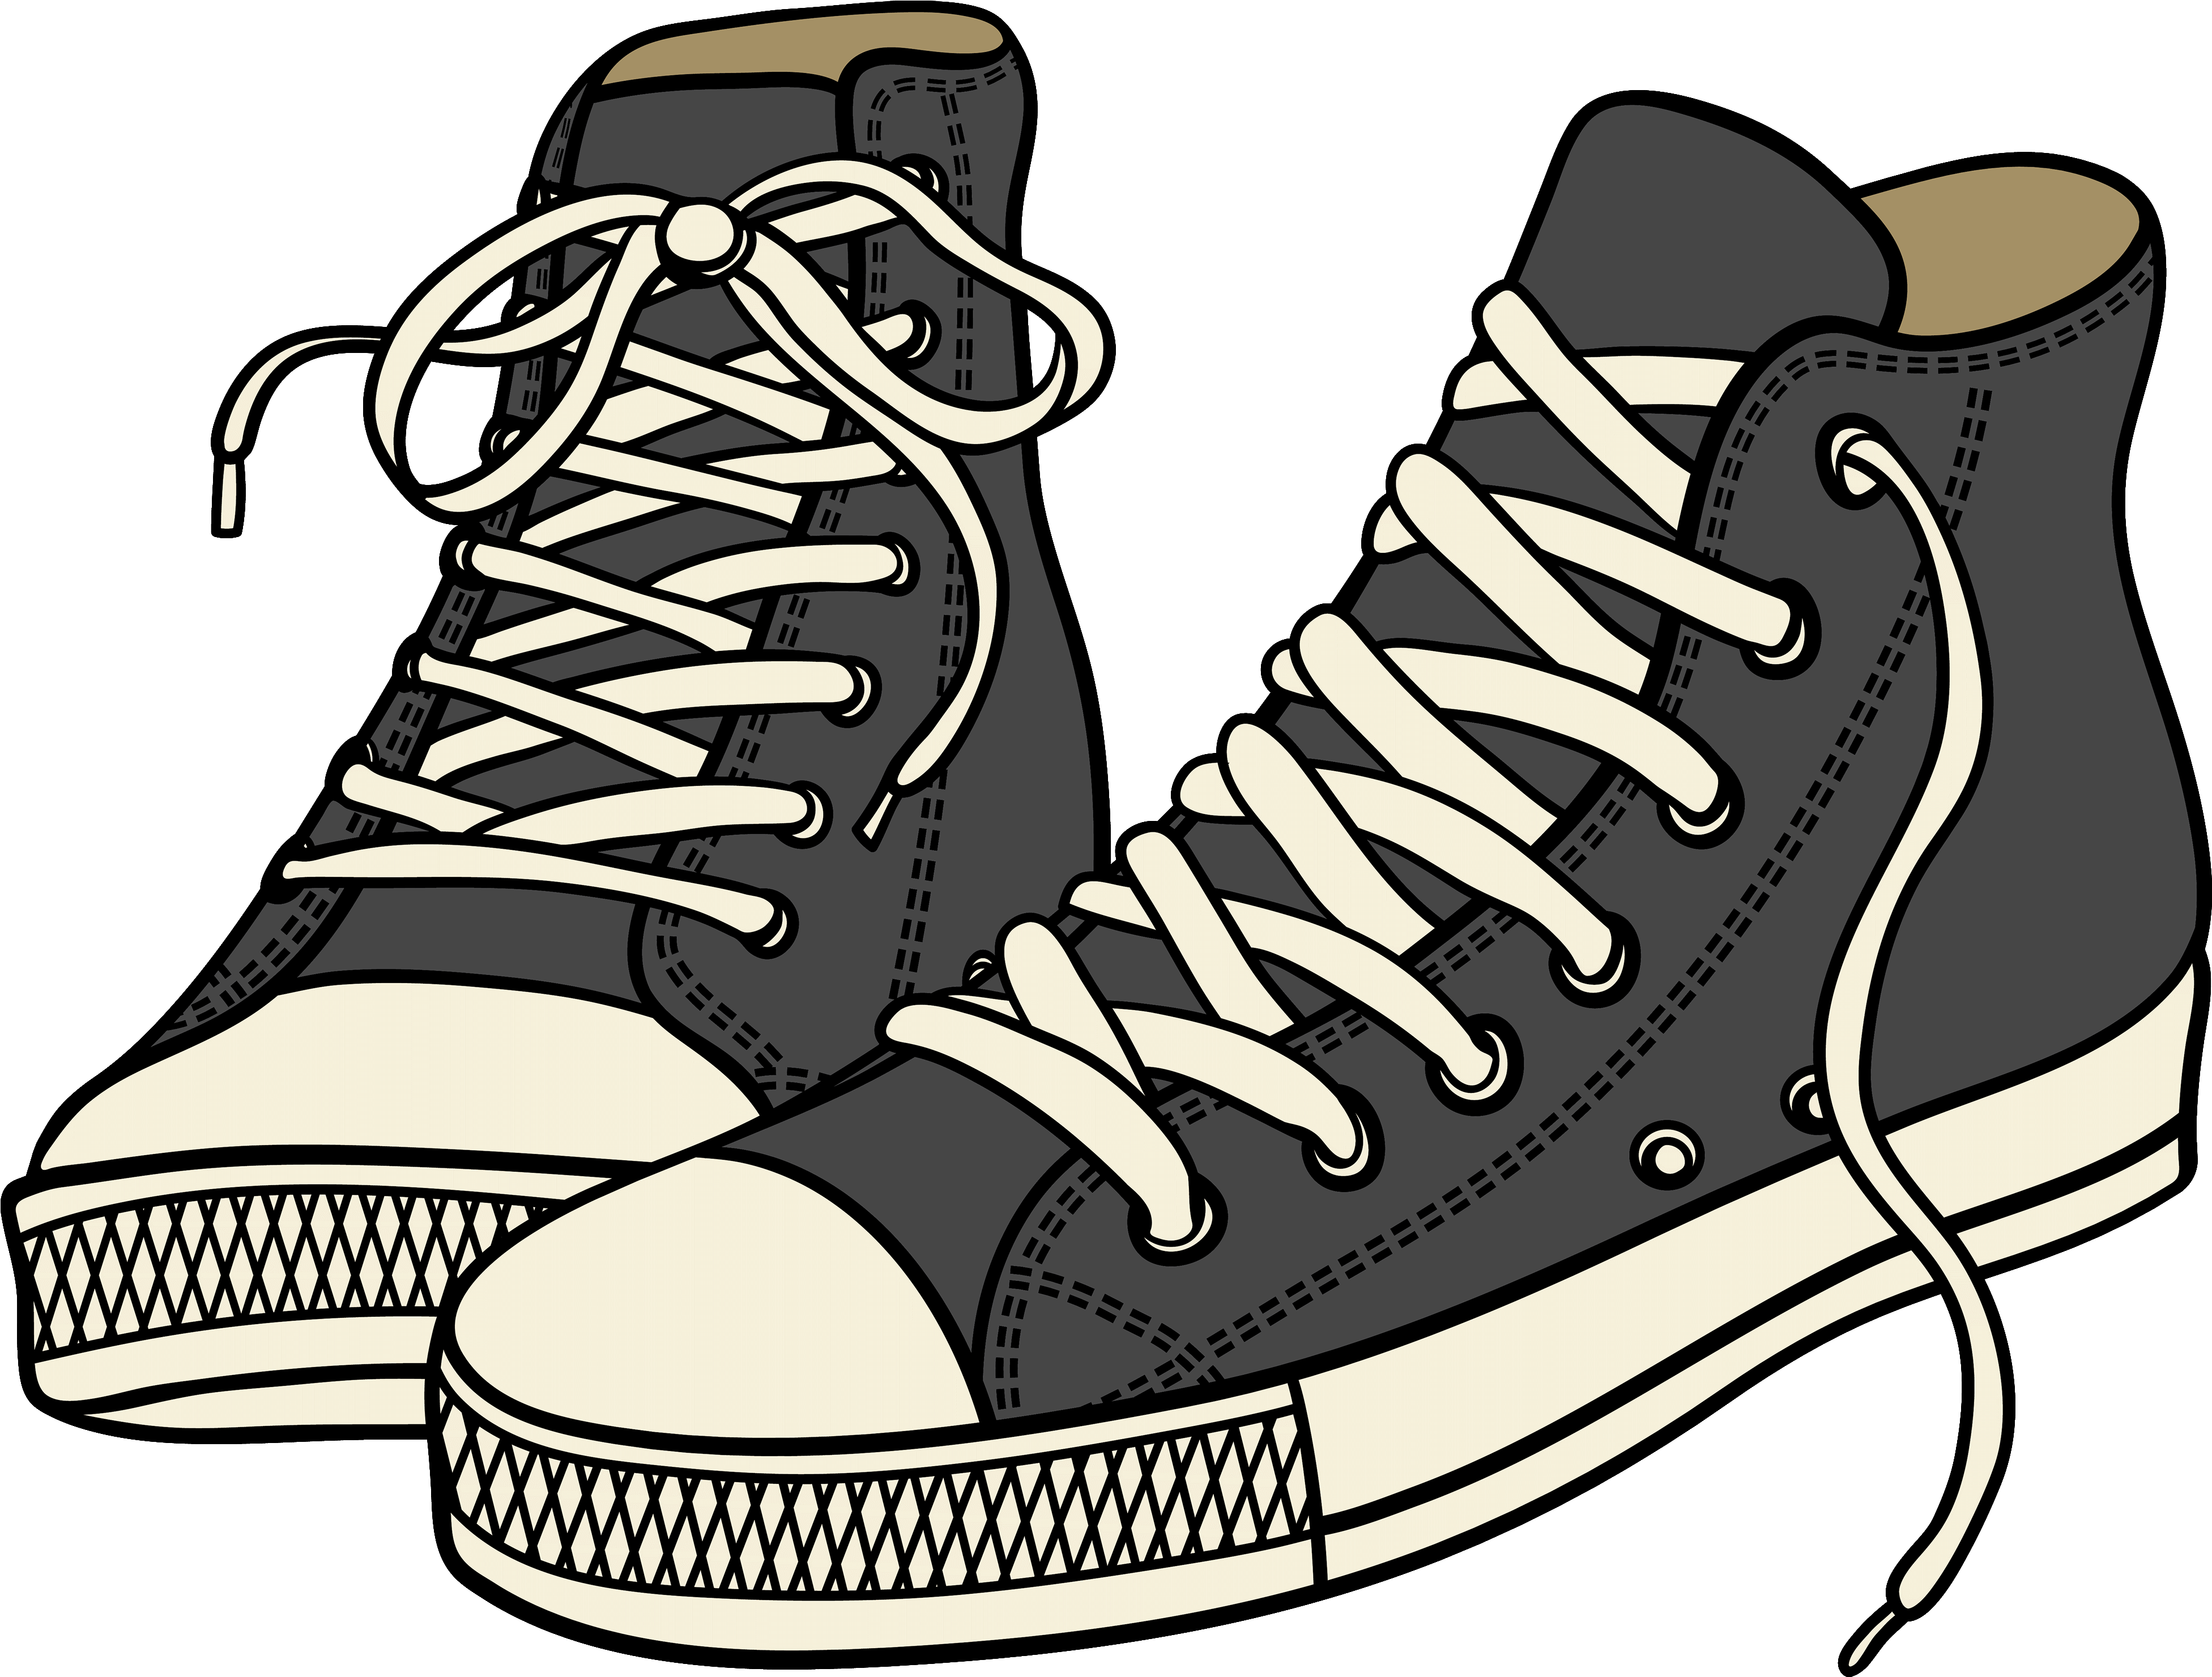 HD Shoes Png Image Transparent Free Download.